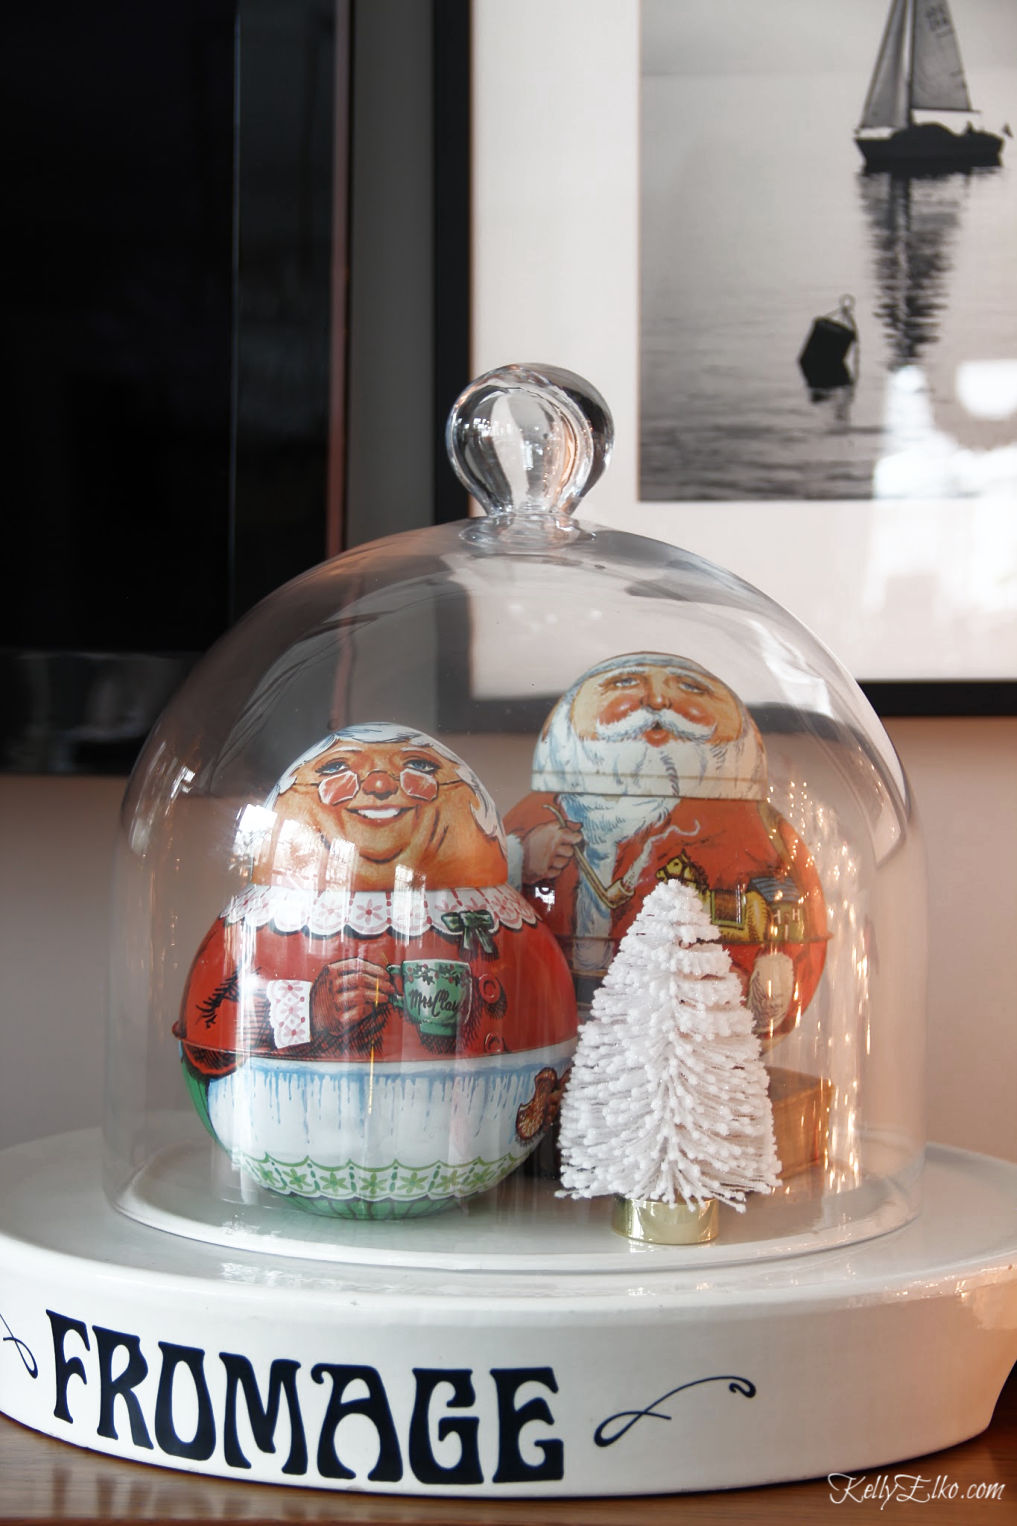 Love these cute Santa and Mrs Claus vintage tobacco tins kellyelko.com #vintagechristmas #christmasdecor #santa